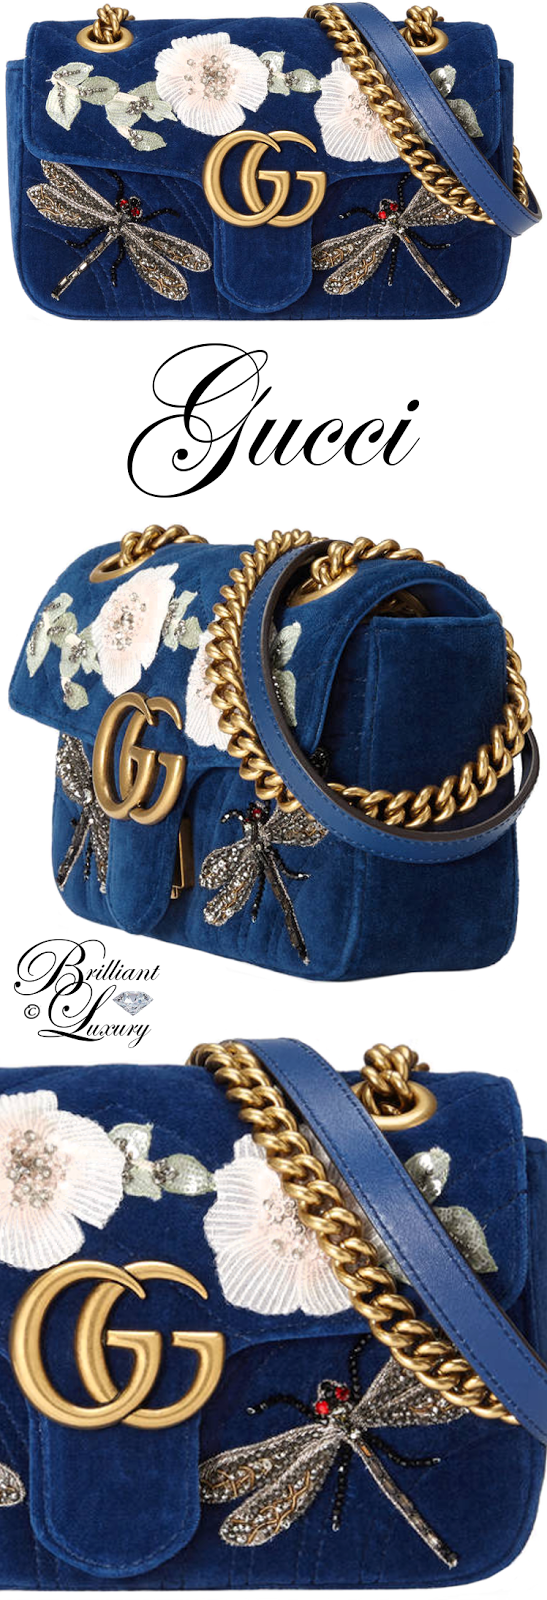 Brilliant Luxury ♦ Gucci GG Marmont Embroidered Velvet Mini Bag